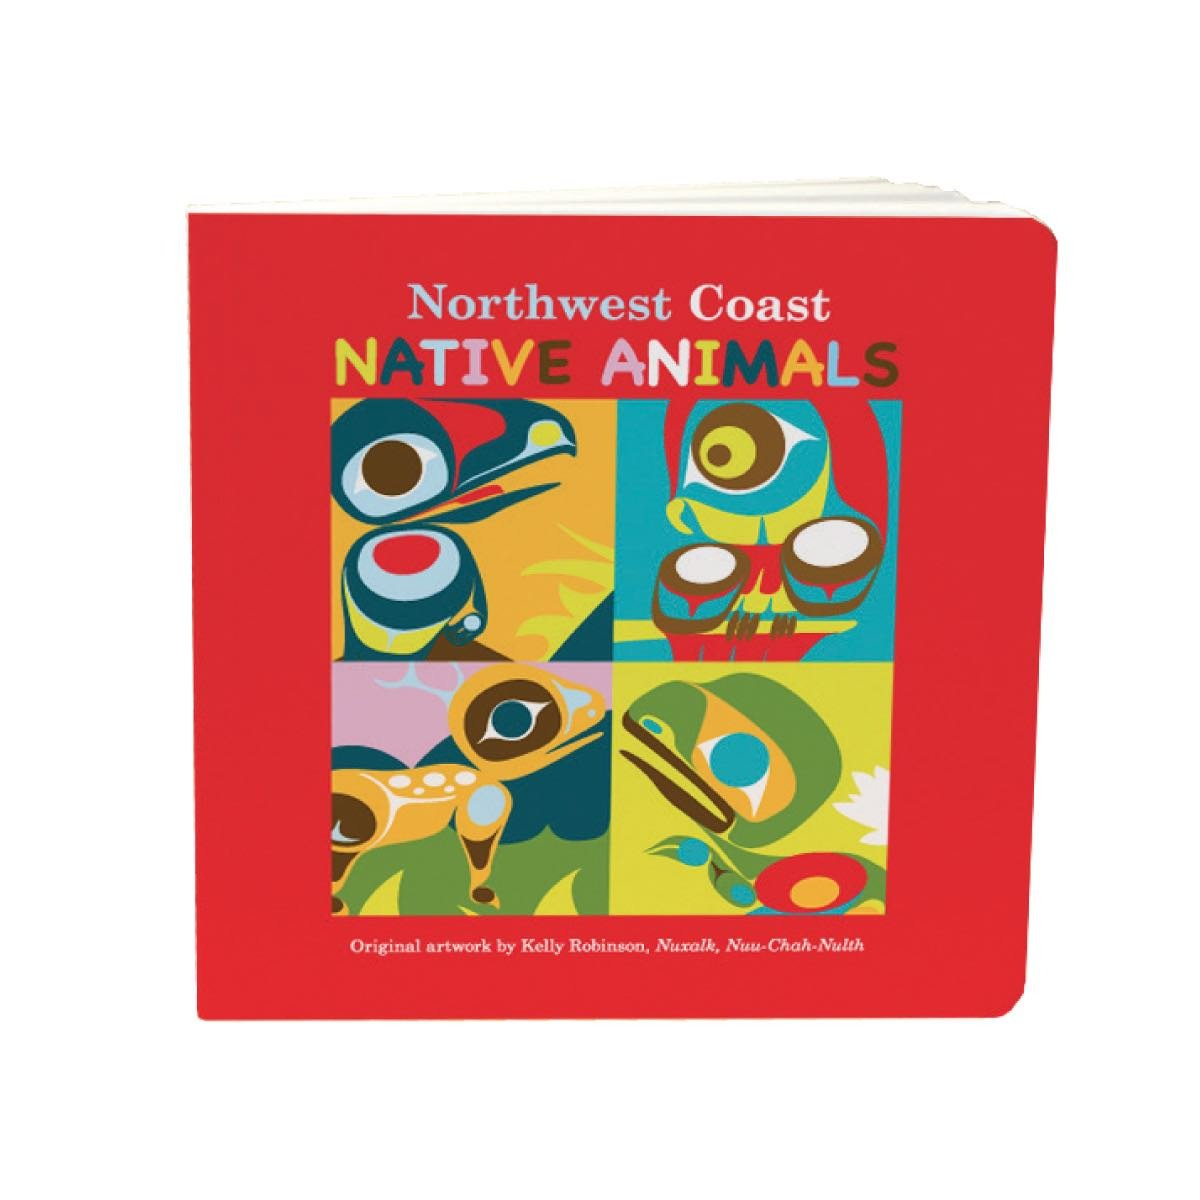 Northwest Coast Native Animals - Children's Board Book